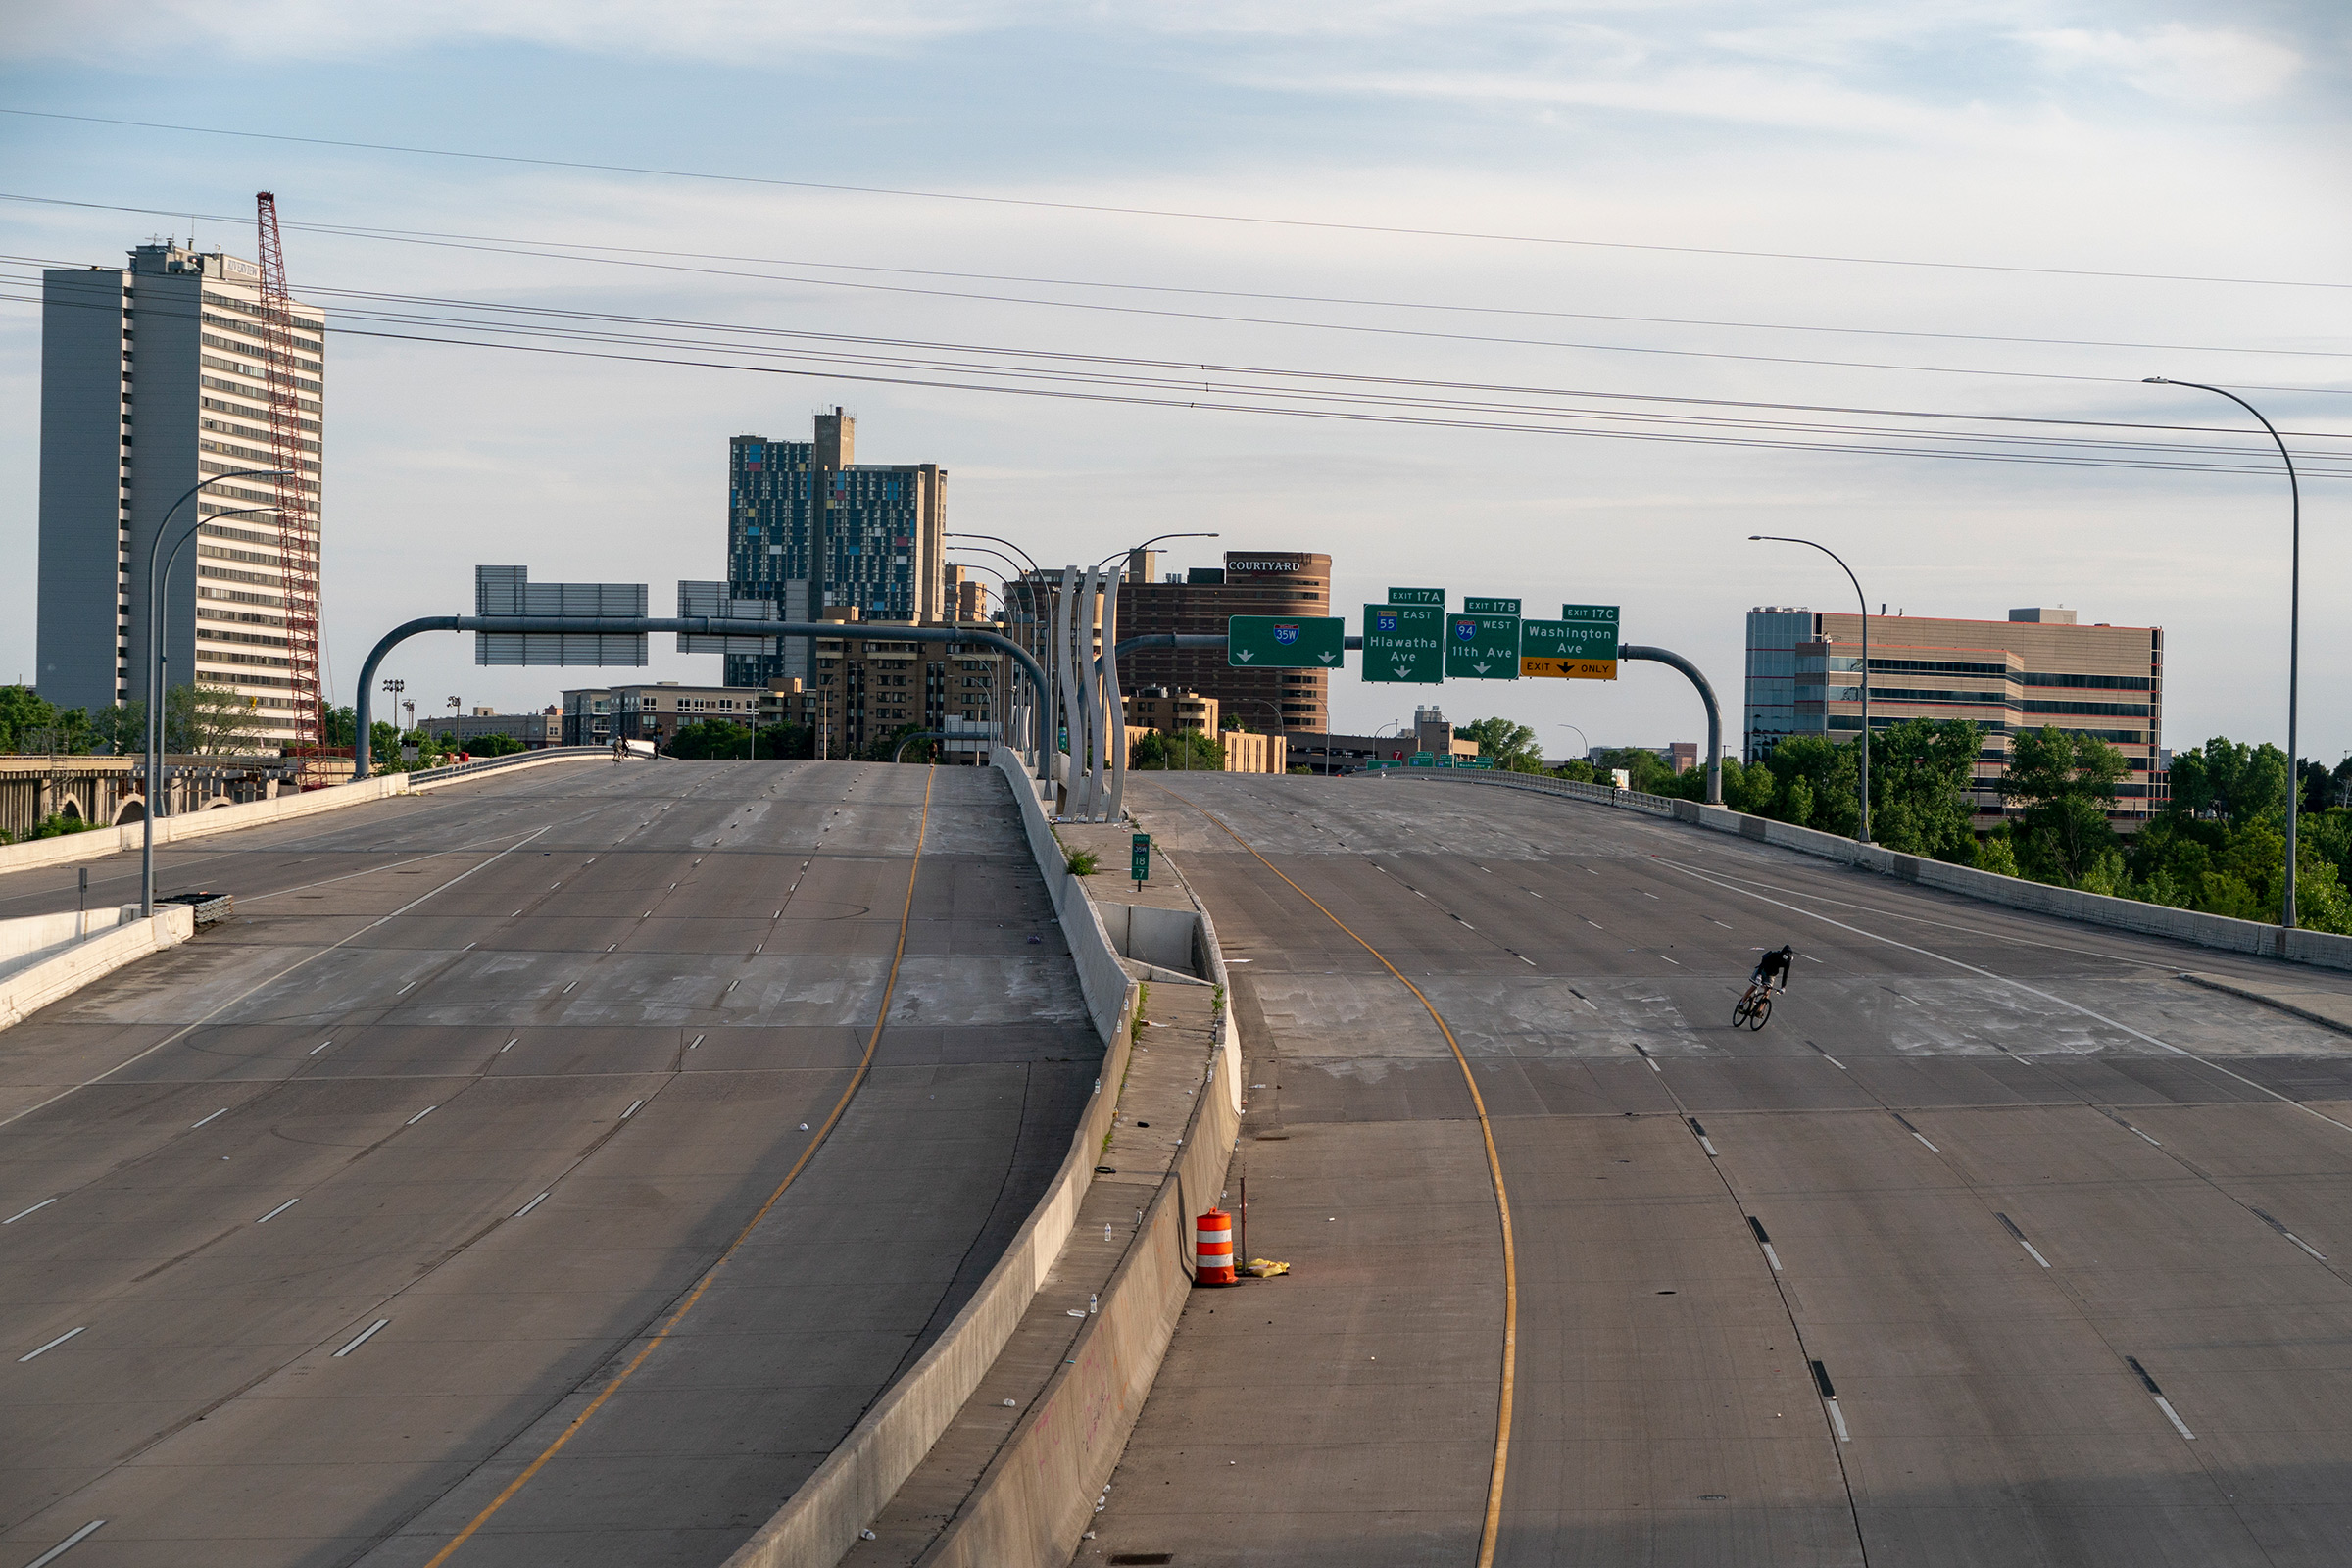 Minneapolis, May 31, 2020. A closed highway during protests following Floyd's killing by police.